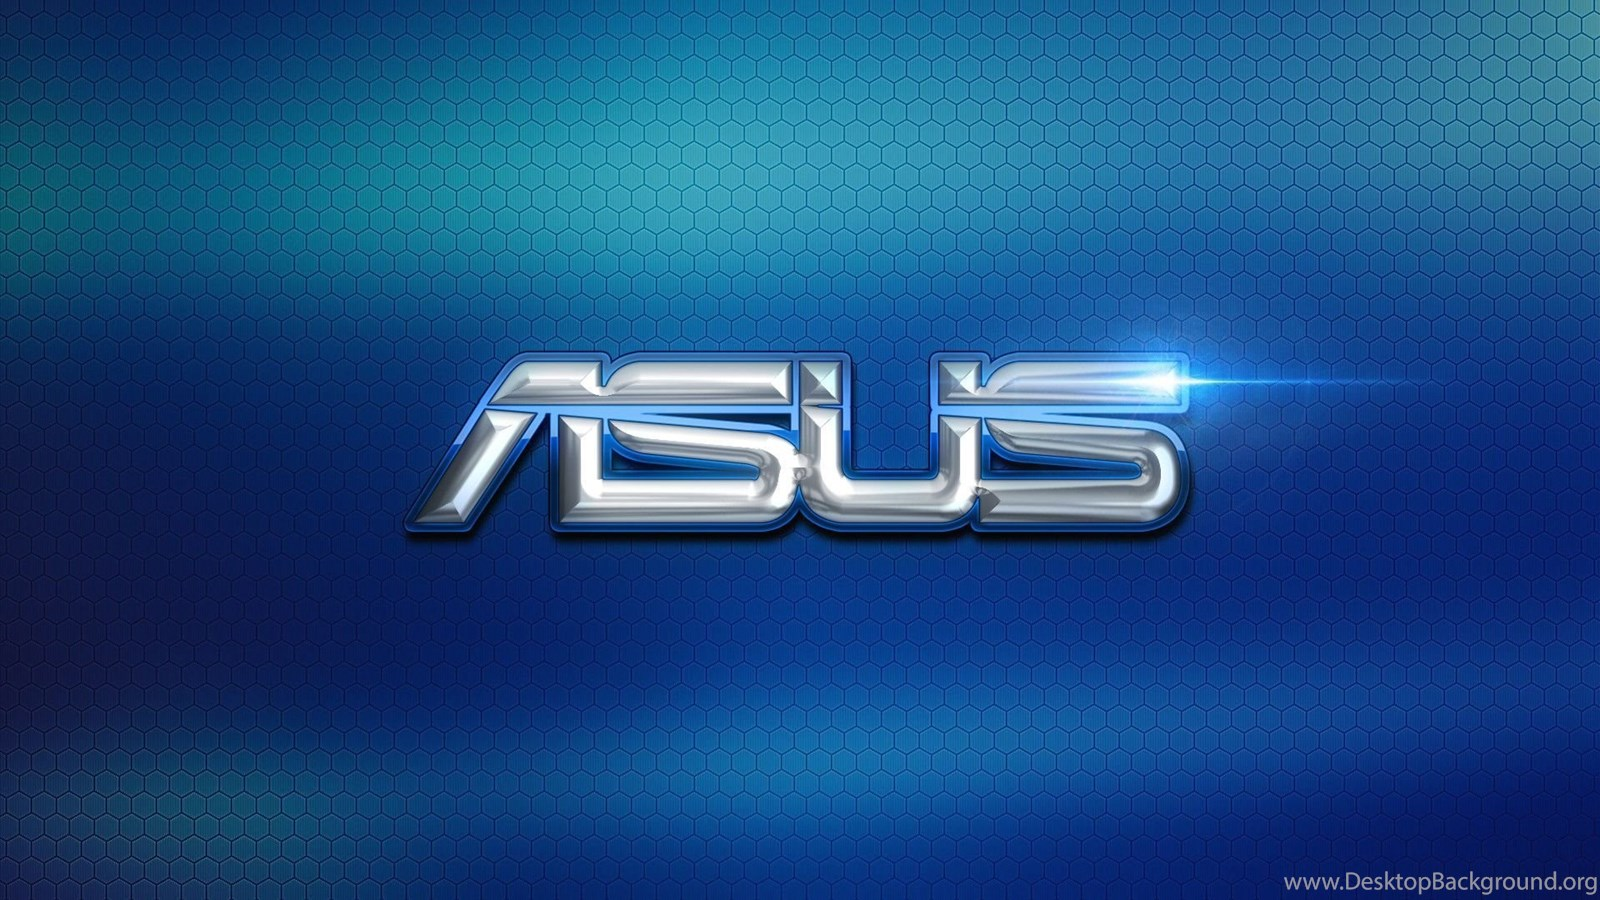 Asus Logo 1920x1080 (1080p) Wallpapers HD Wallpapers